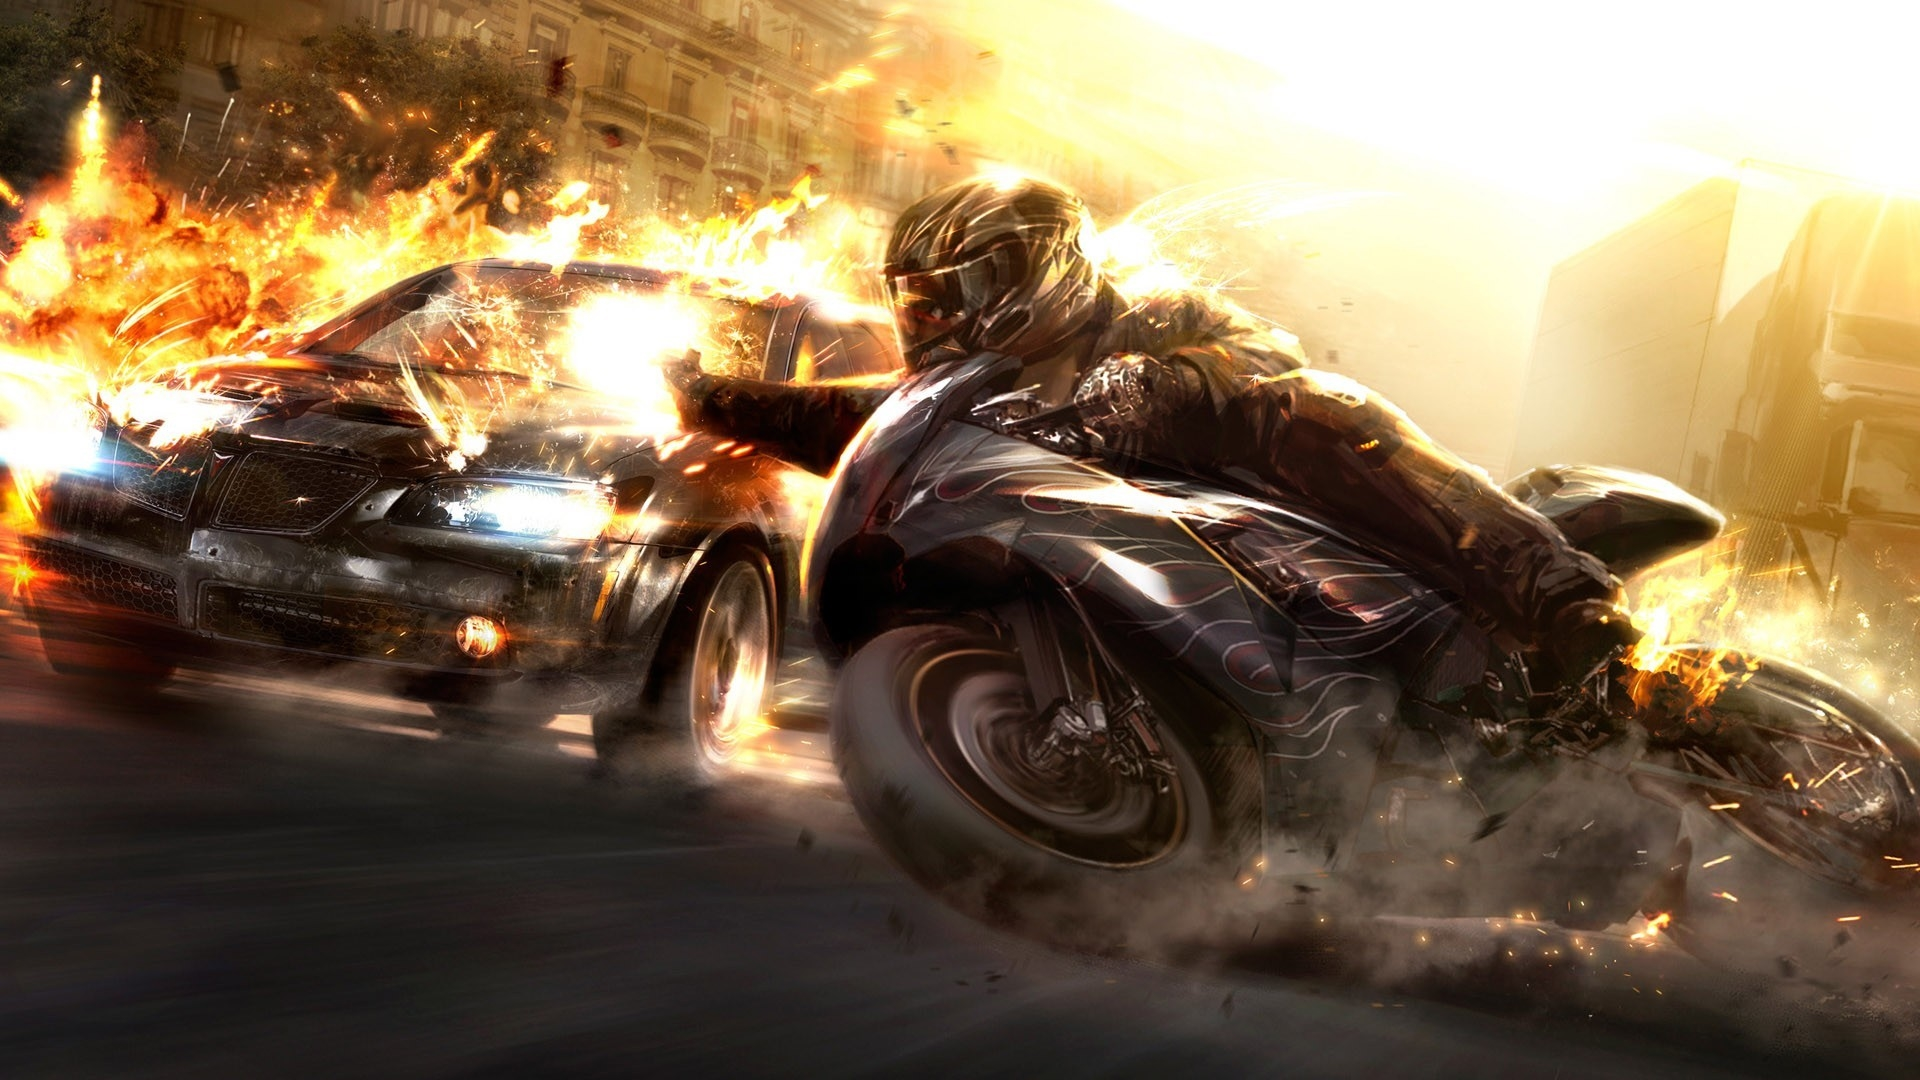 Wallpaperswide Need For Speed Hot Pursuit Wallpapers In Hd 1920x1080